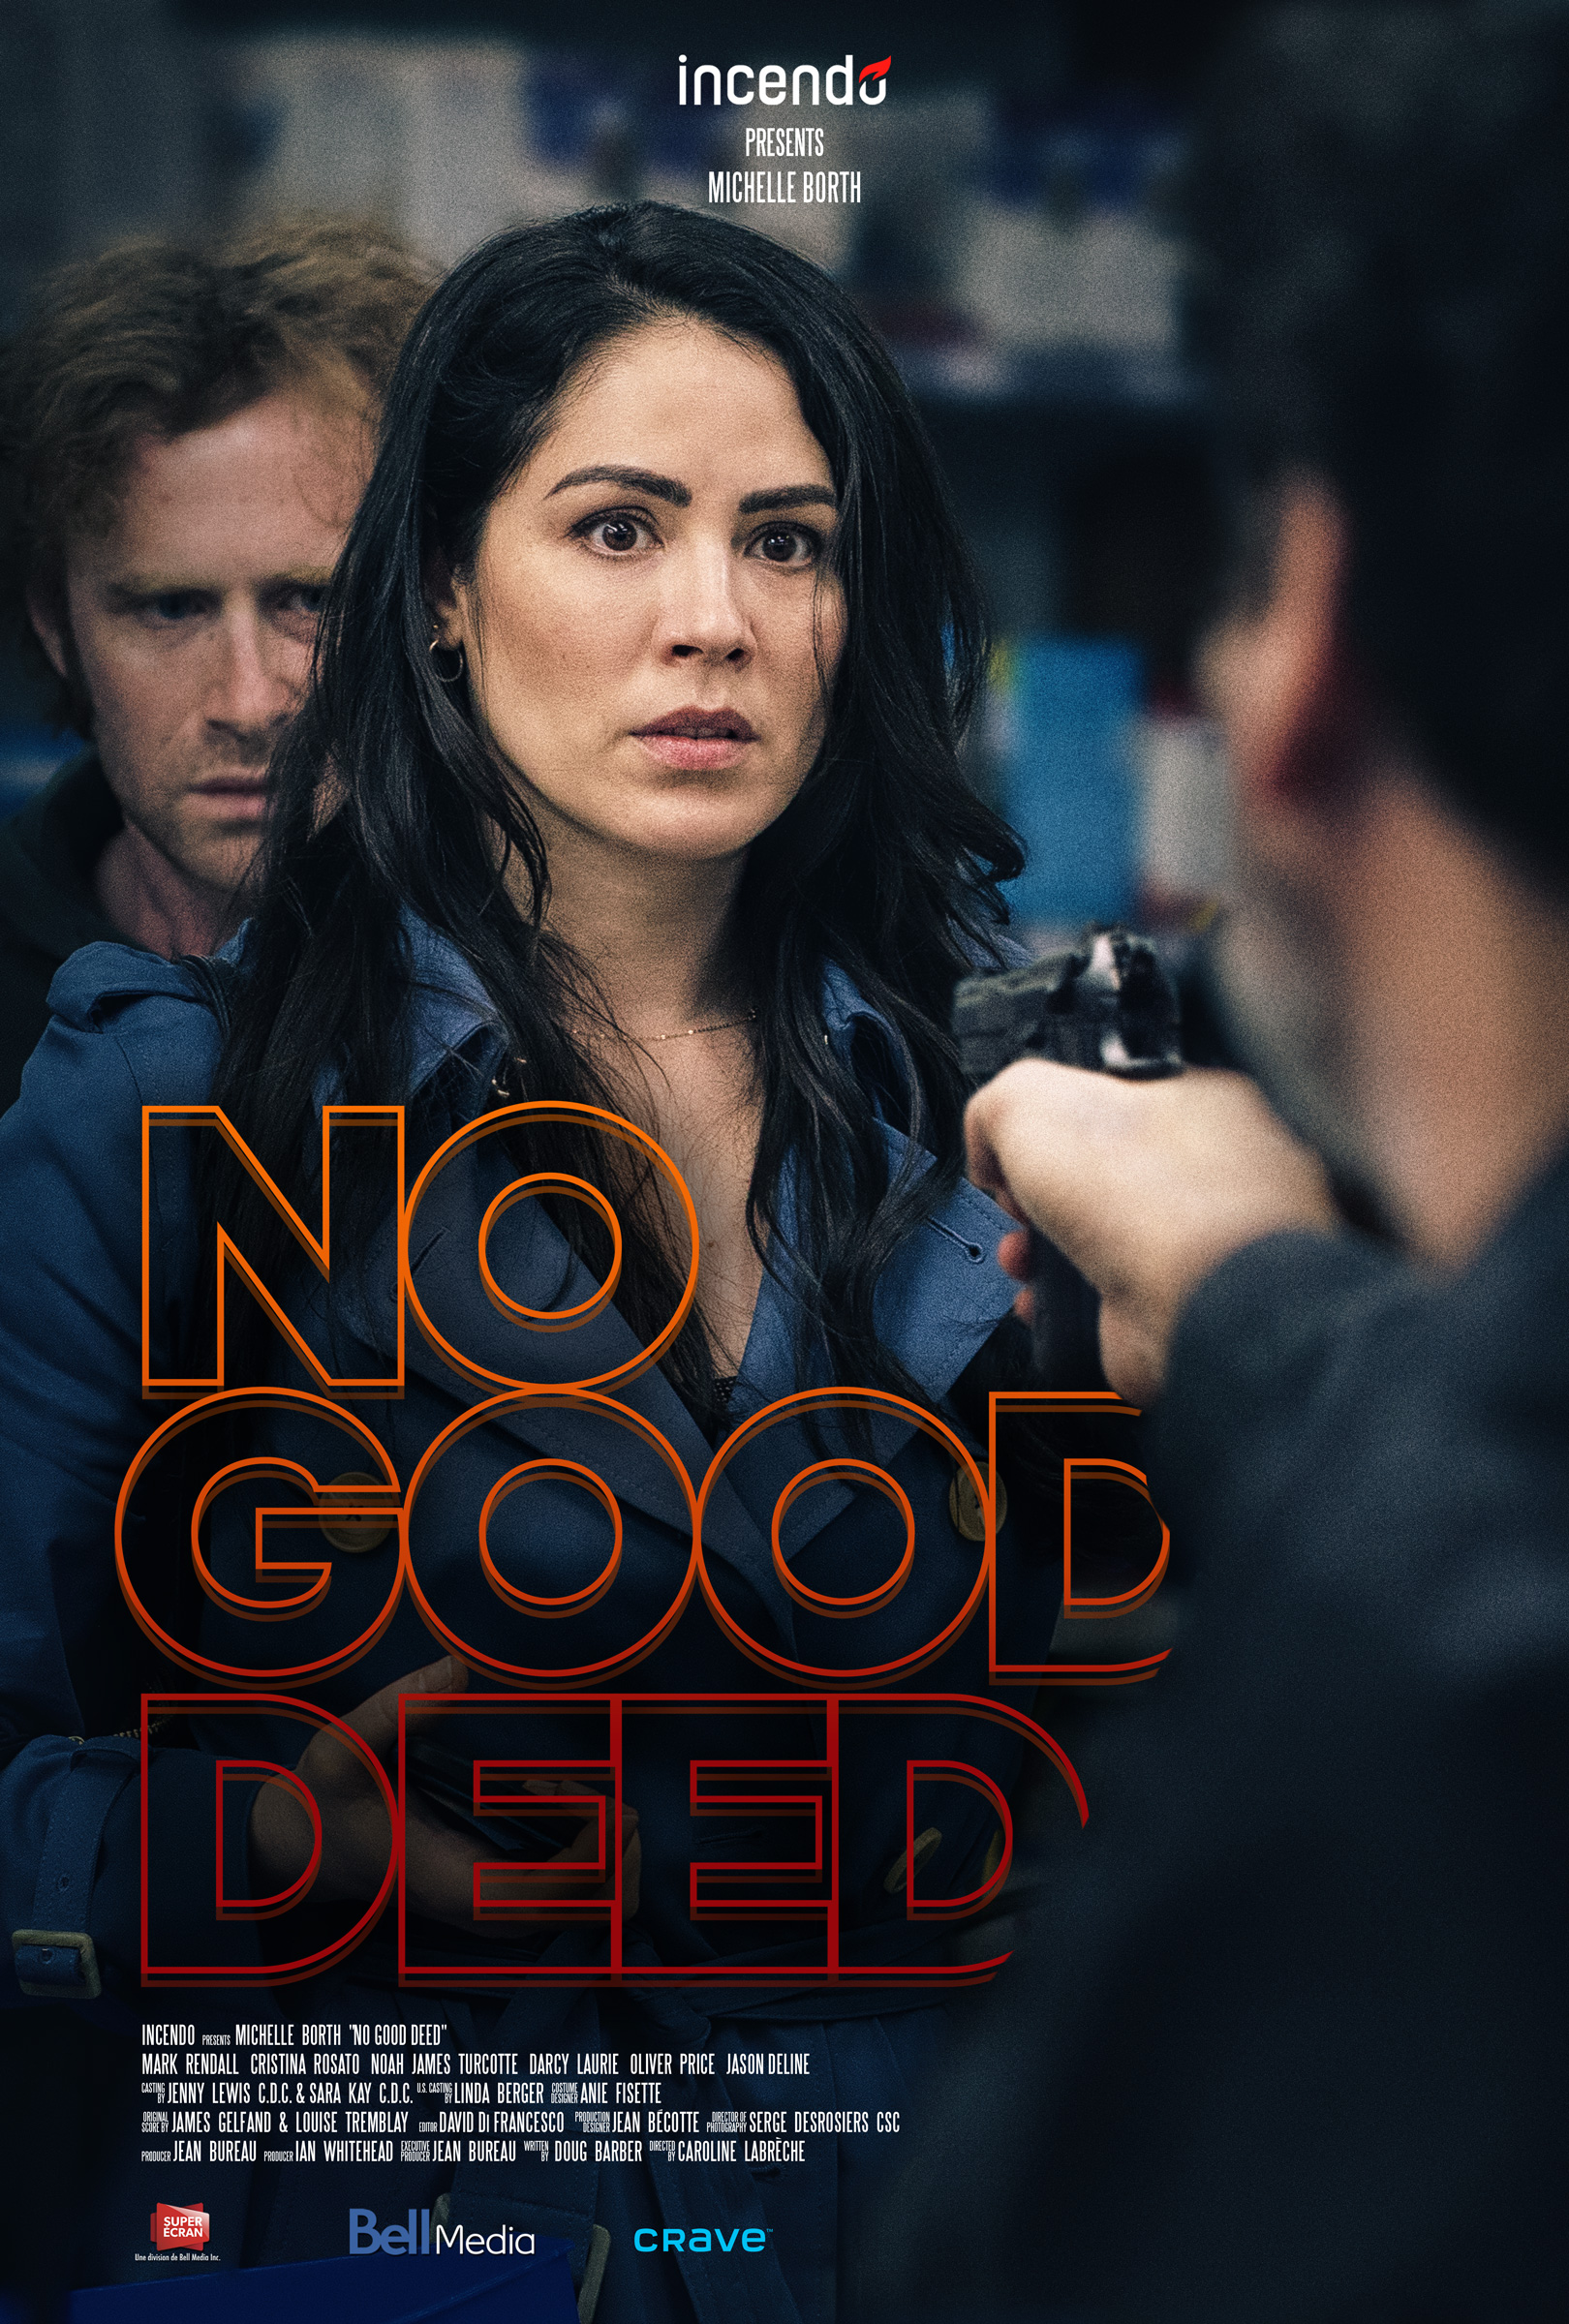 No Good Deed (TV Movie 2020) - IMDb